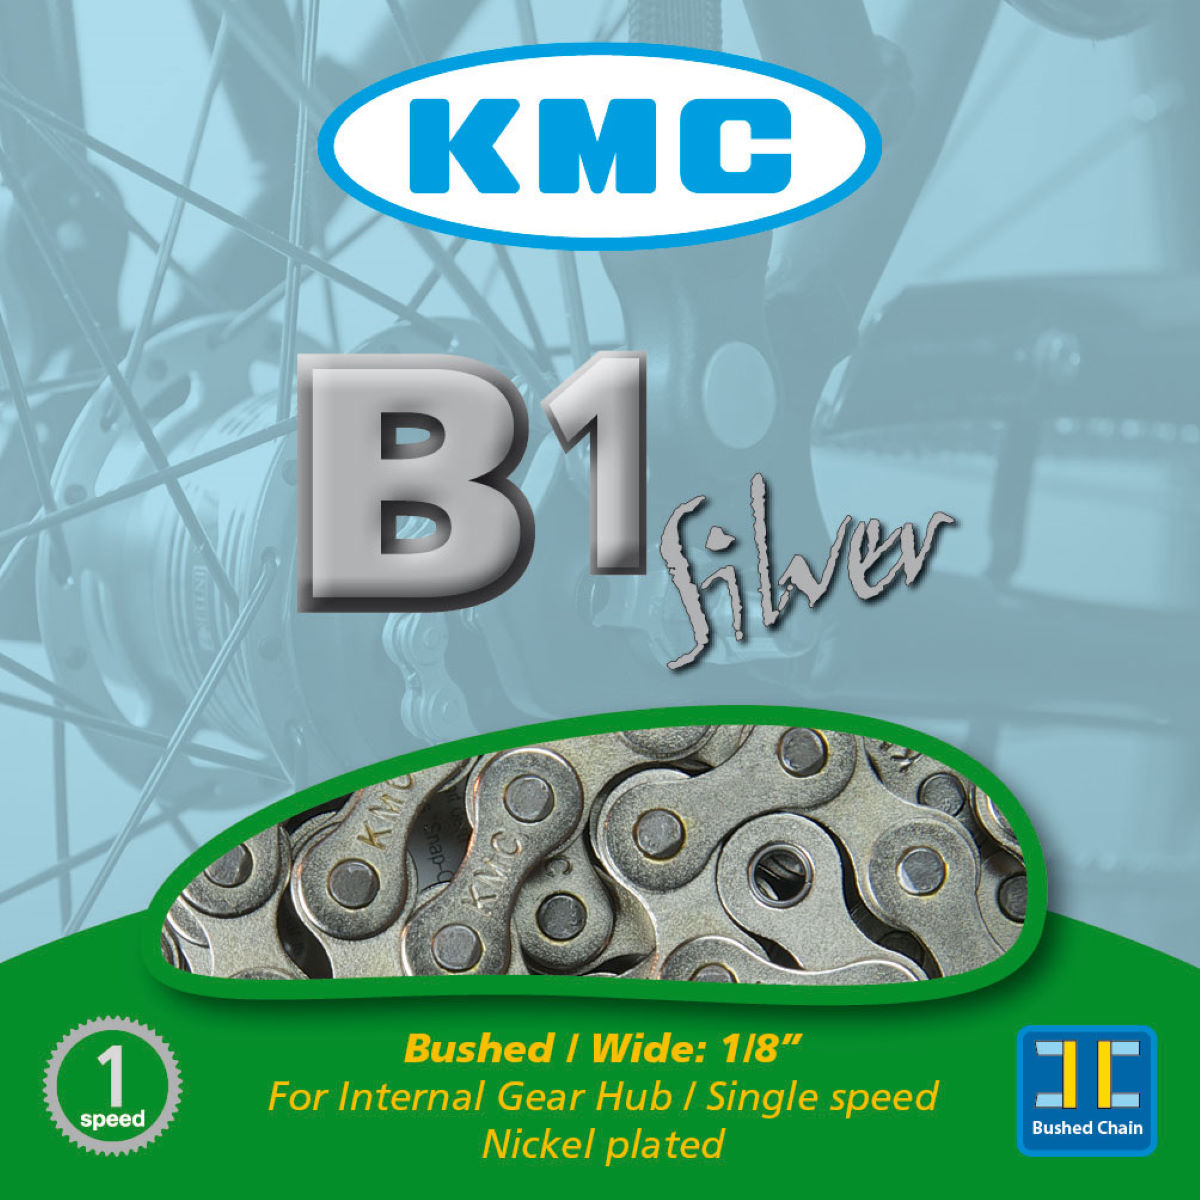 Chaîne single-speed KMC B1 - 1 1/8'' 112 Links Argenté Chaînes